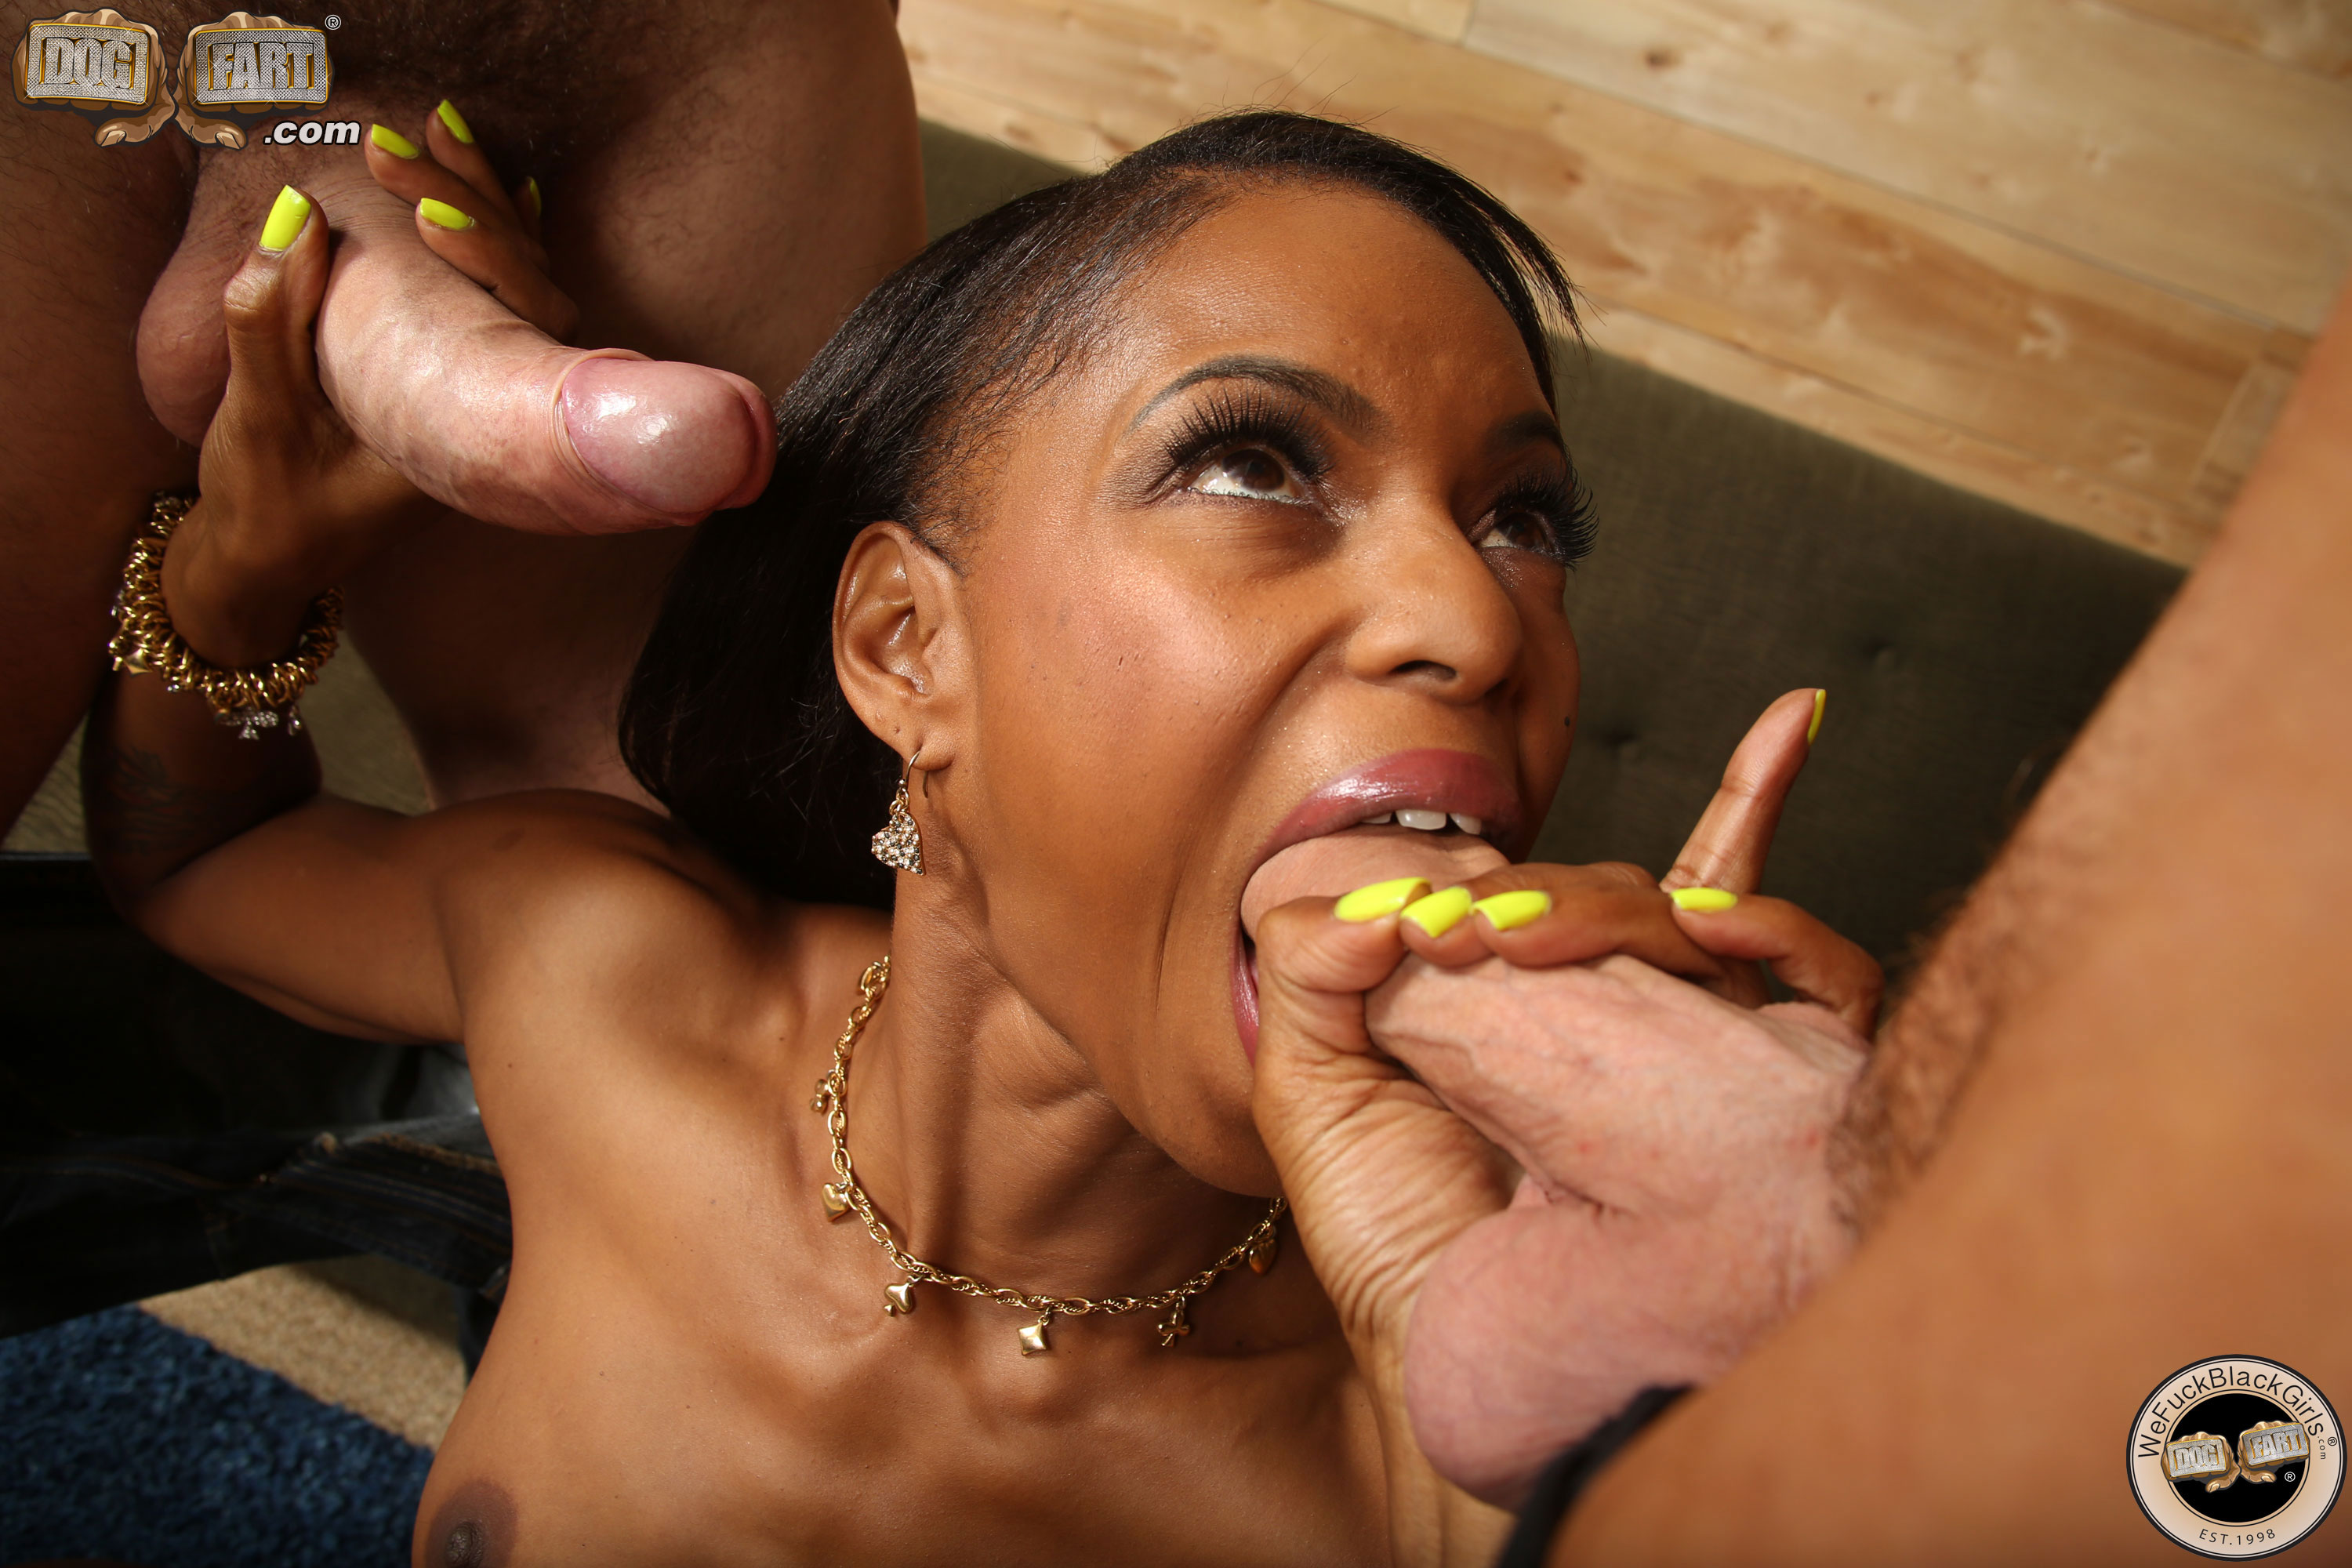 galleries WeFuckBlackGirls content marie luv pic 12